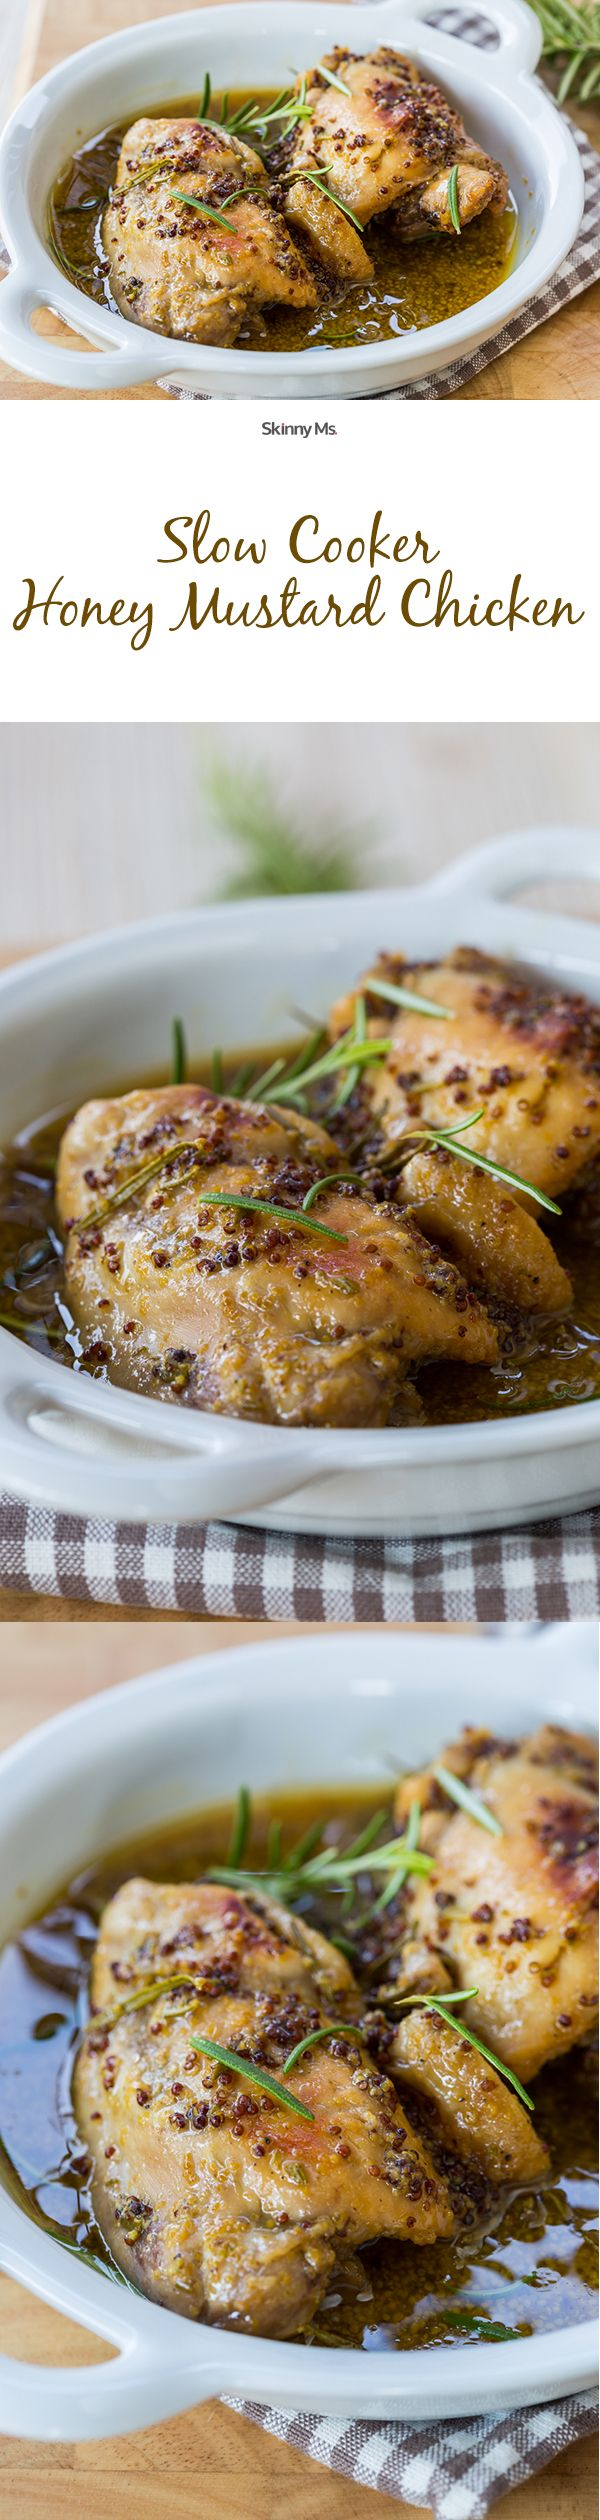 Slow Cooker Honey Mustard Chicken--this recipe is so easy and soooo good!